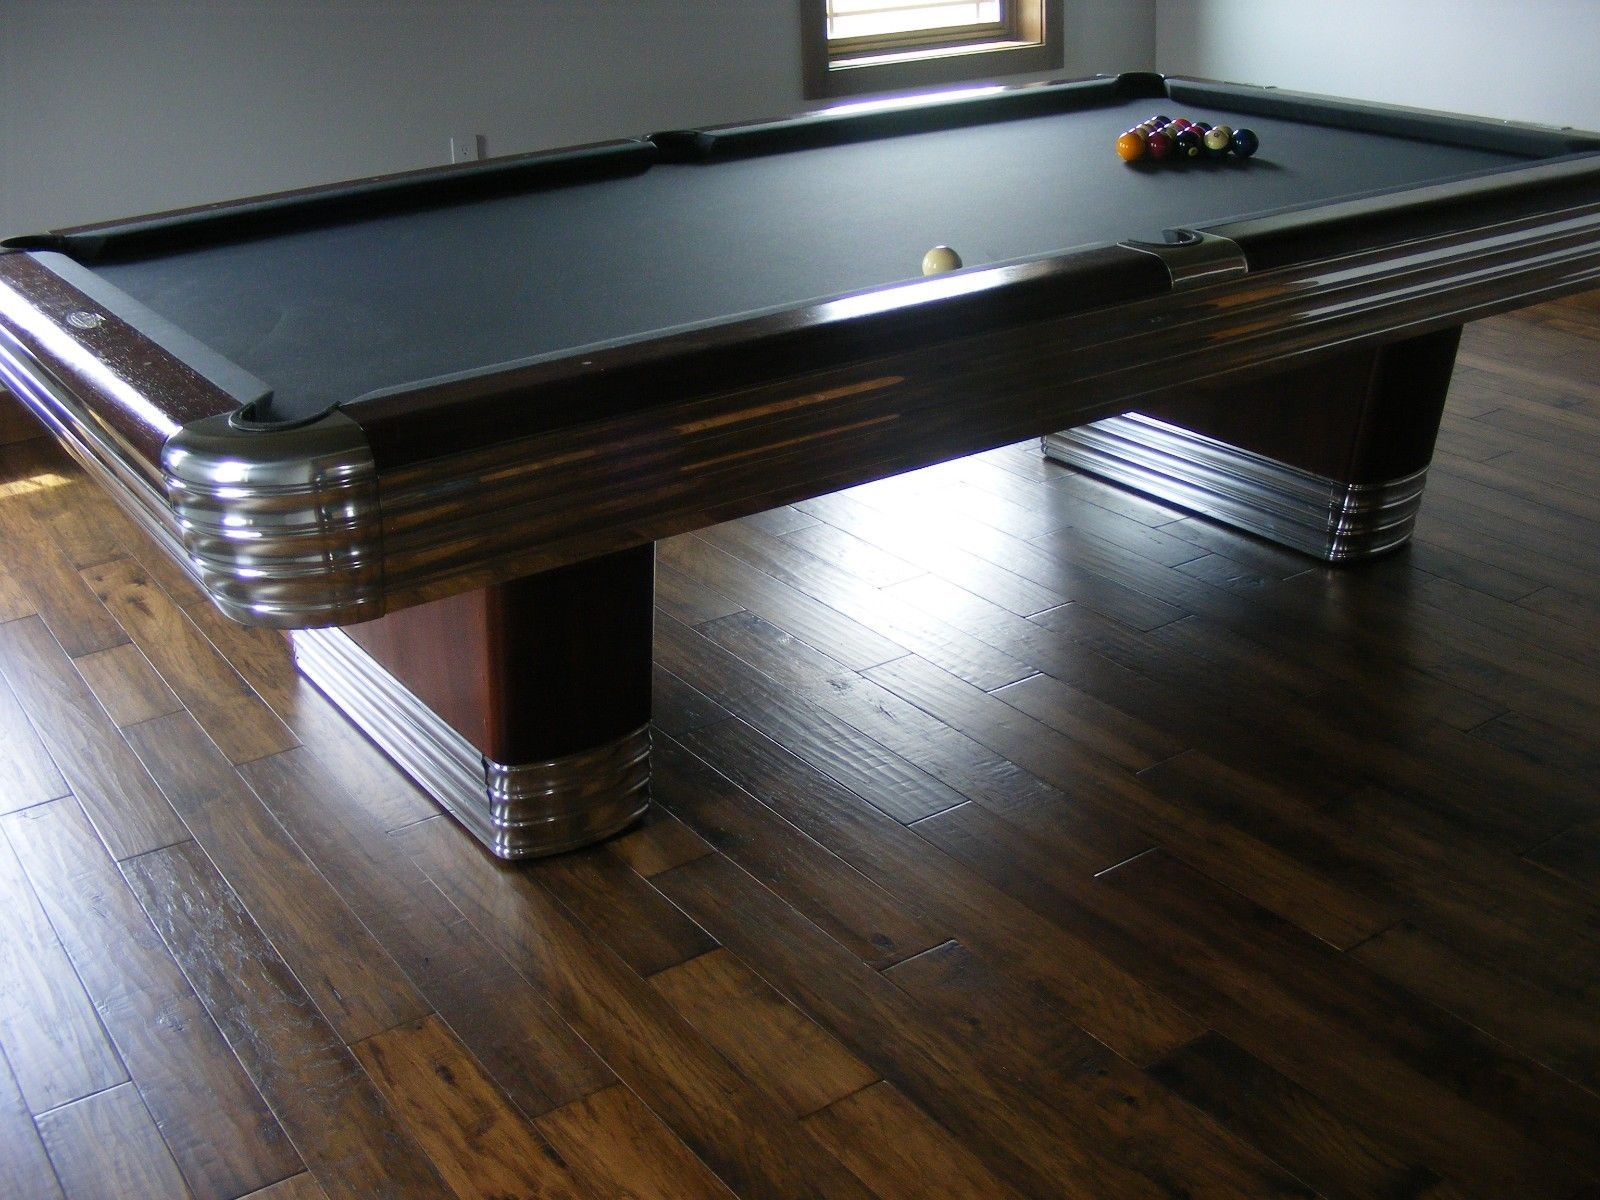 Brunswick Centennial Pool Table Retired Brunswick Pool Tables - Brunswick centennial pool table